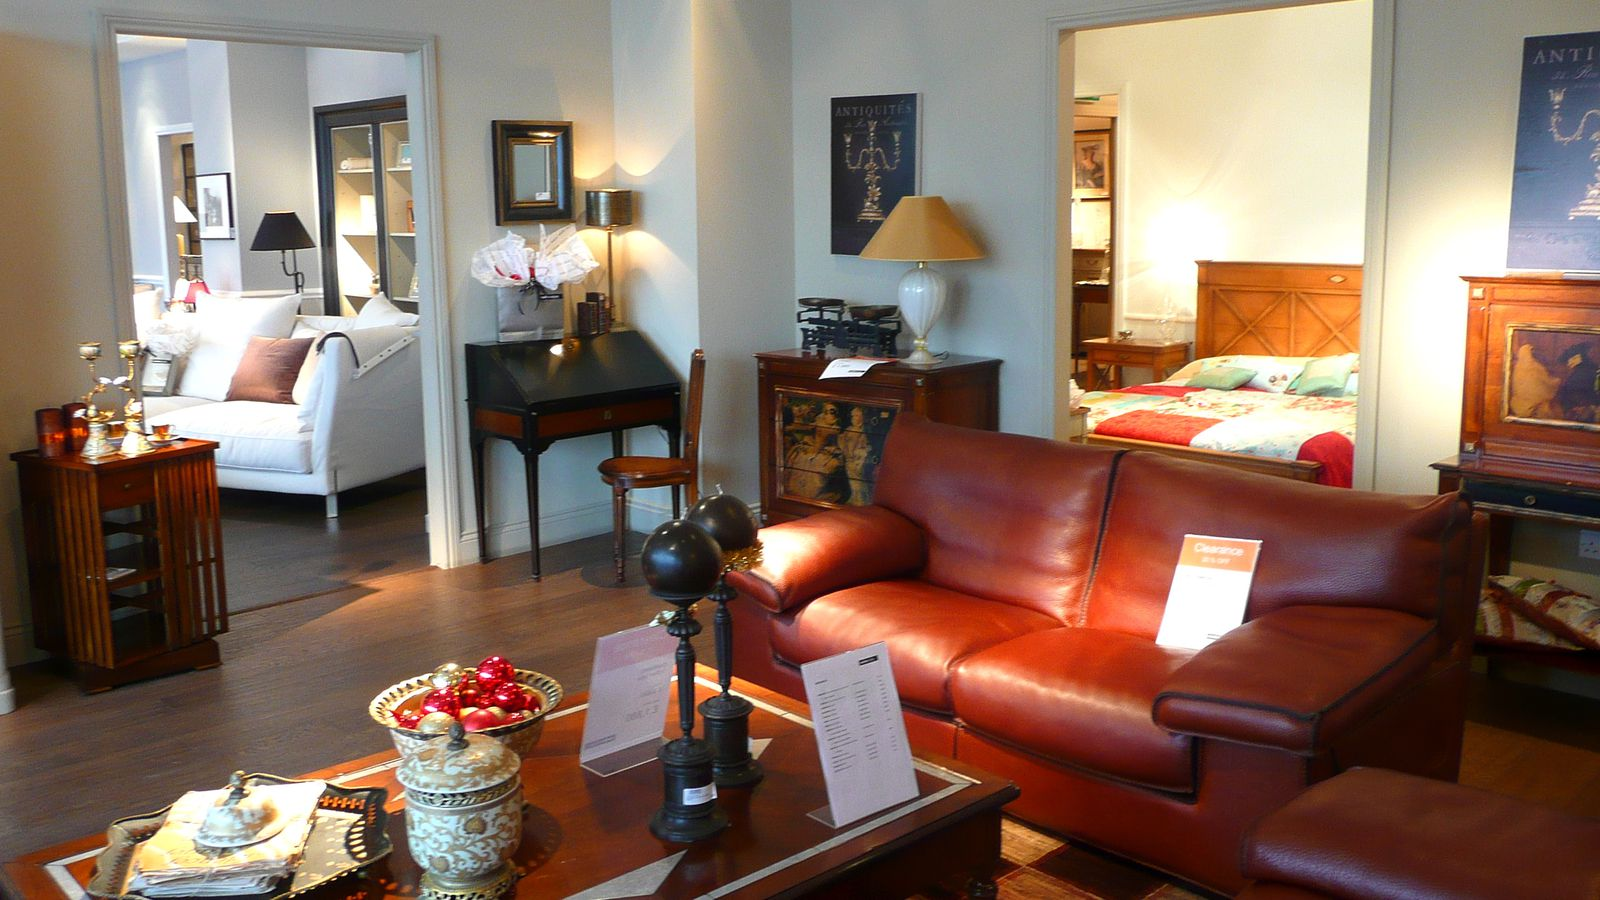 Best Furniture Stores In Boston Area Boston Furniture Stores 15 Of The Best For All Price